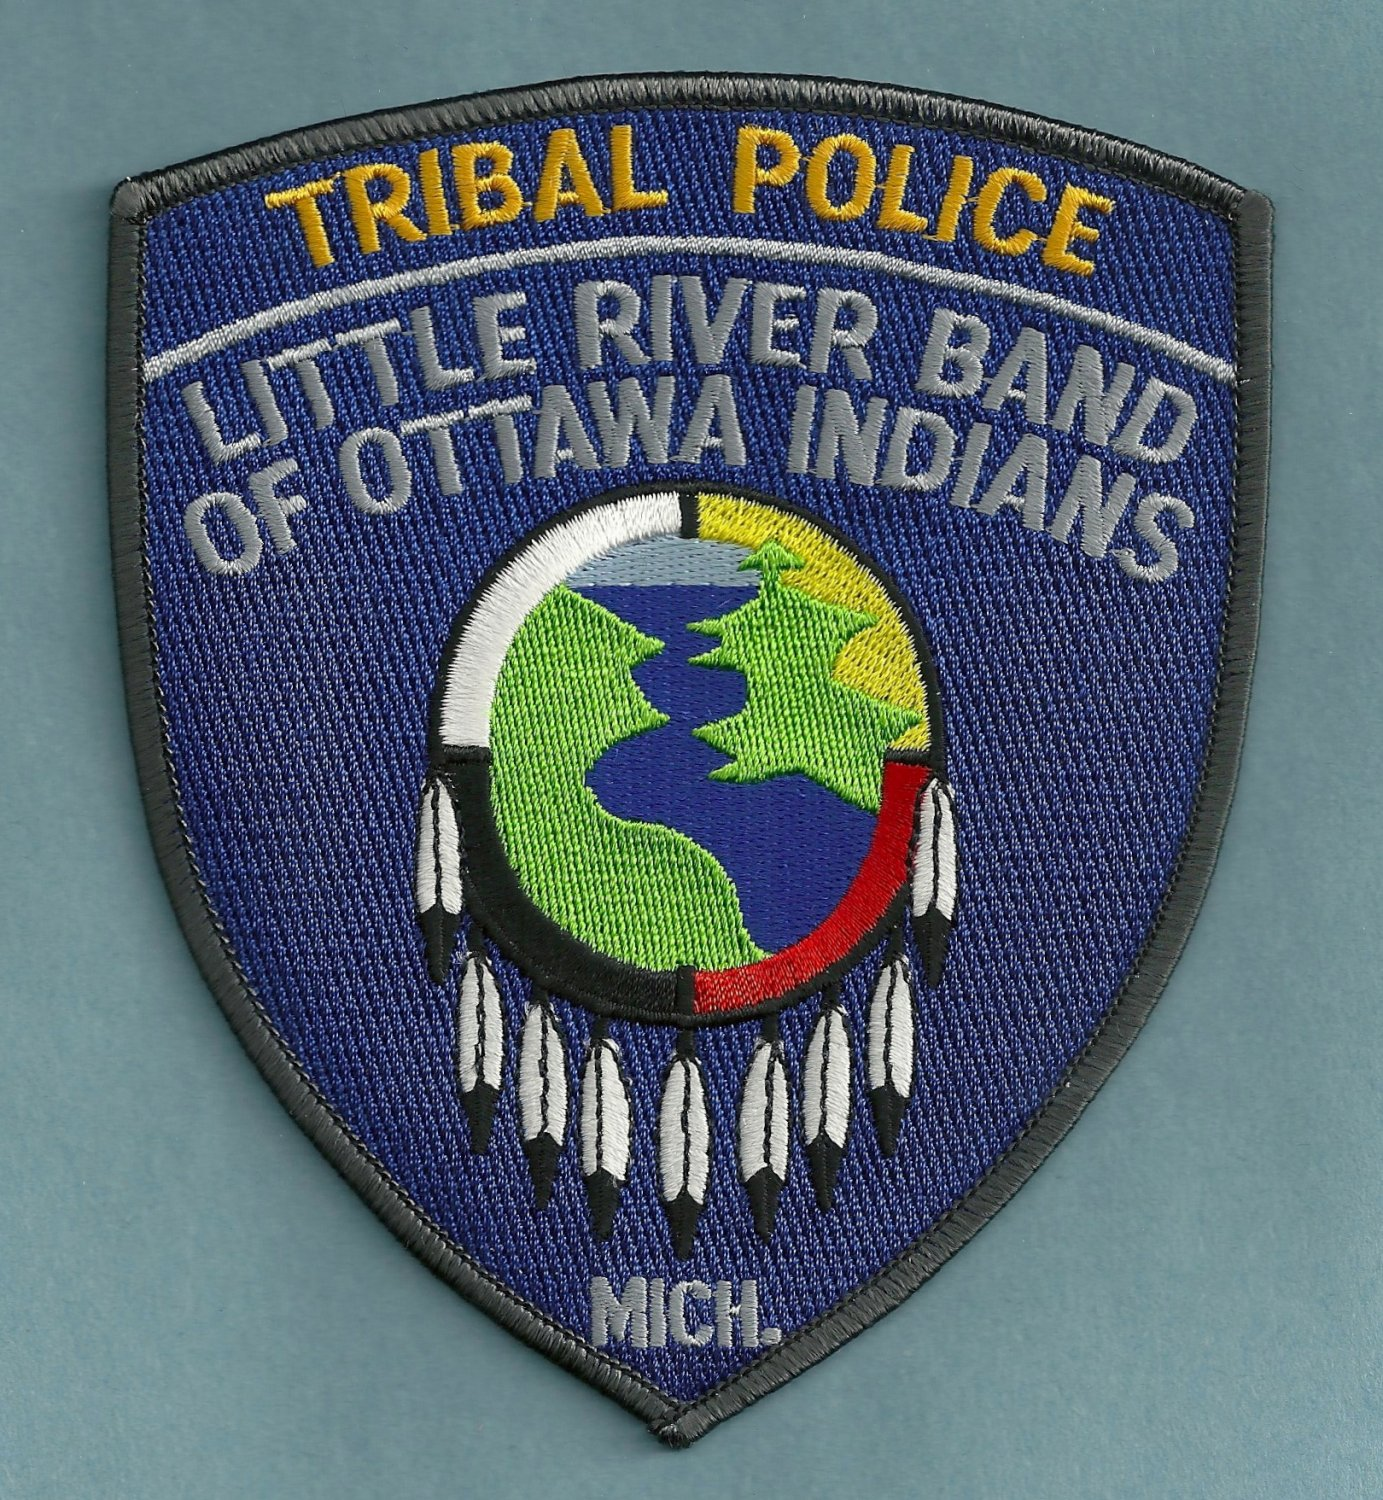 Little river band of ottawa indians michigan tribal police